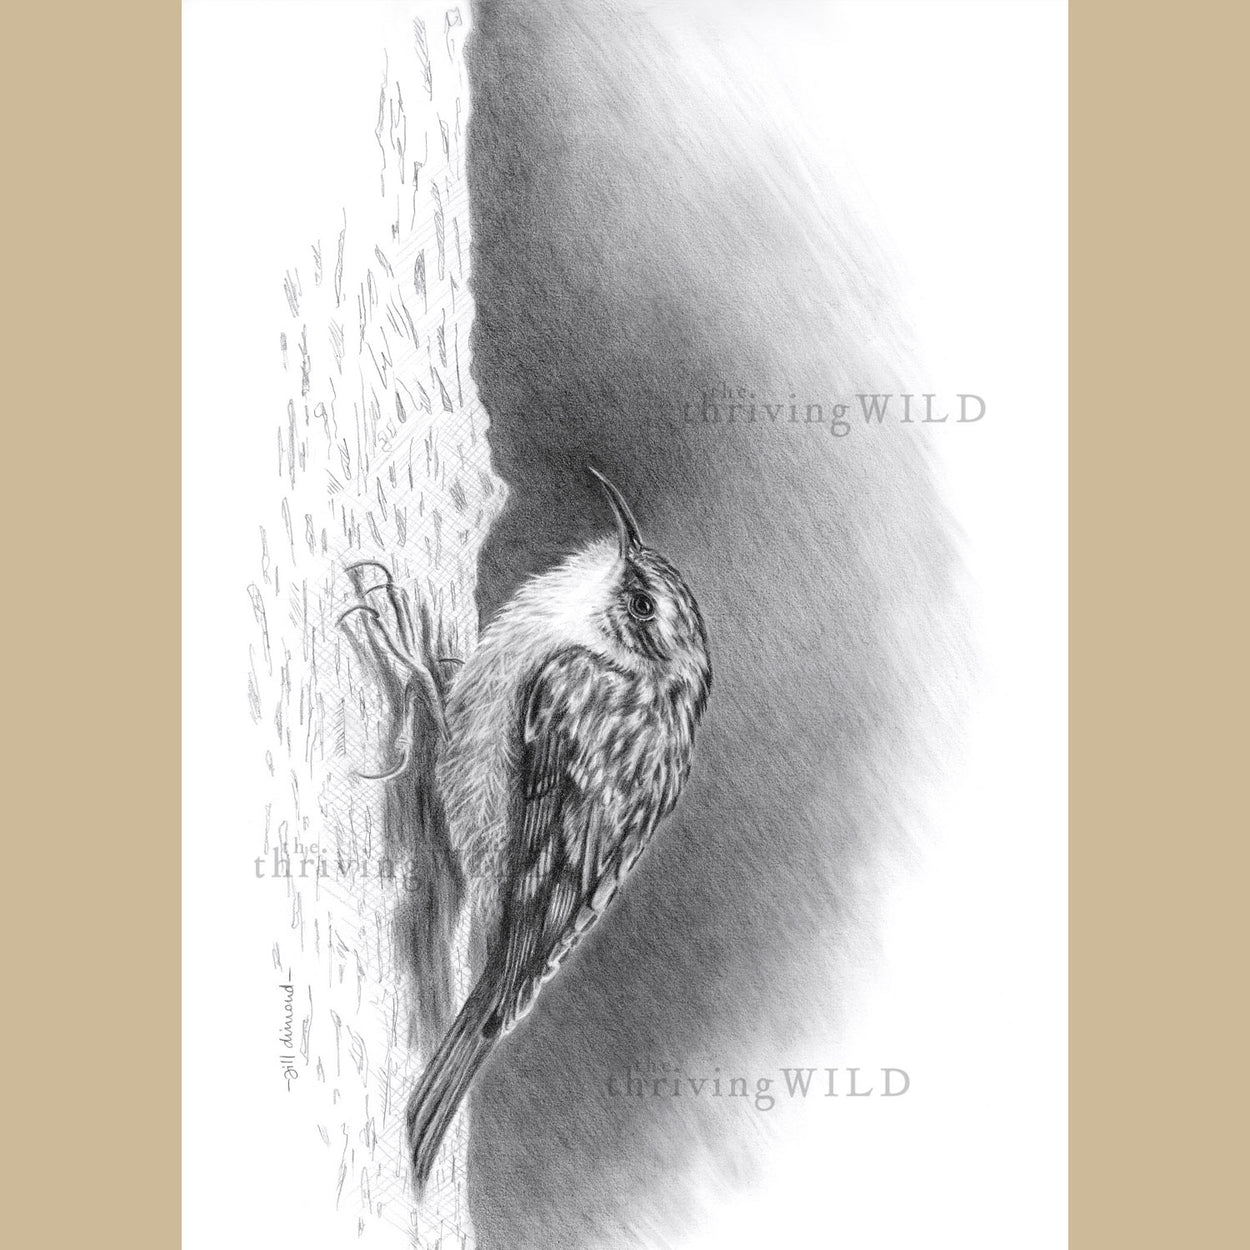 Treecreeper Bird Graphite Penci Drawing - The Thriving Wild - Jill DImond